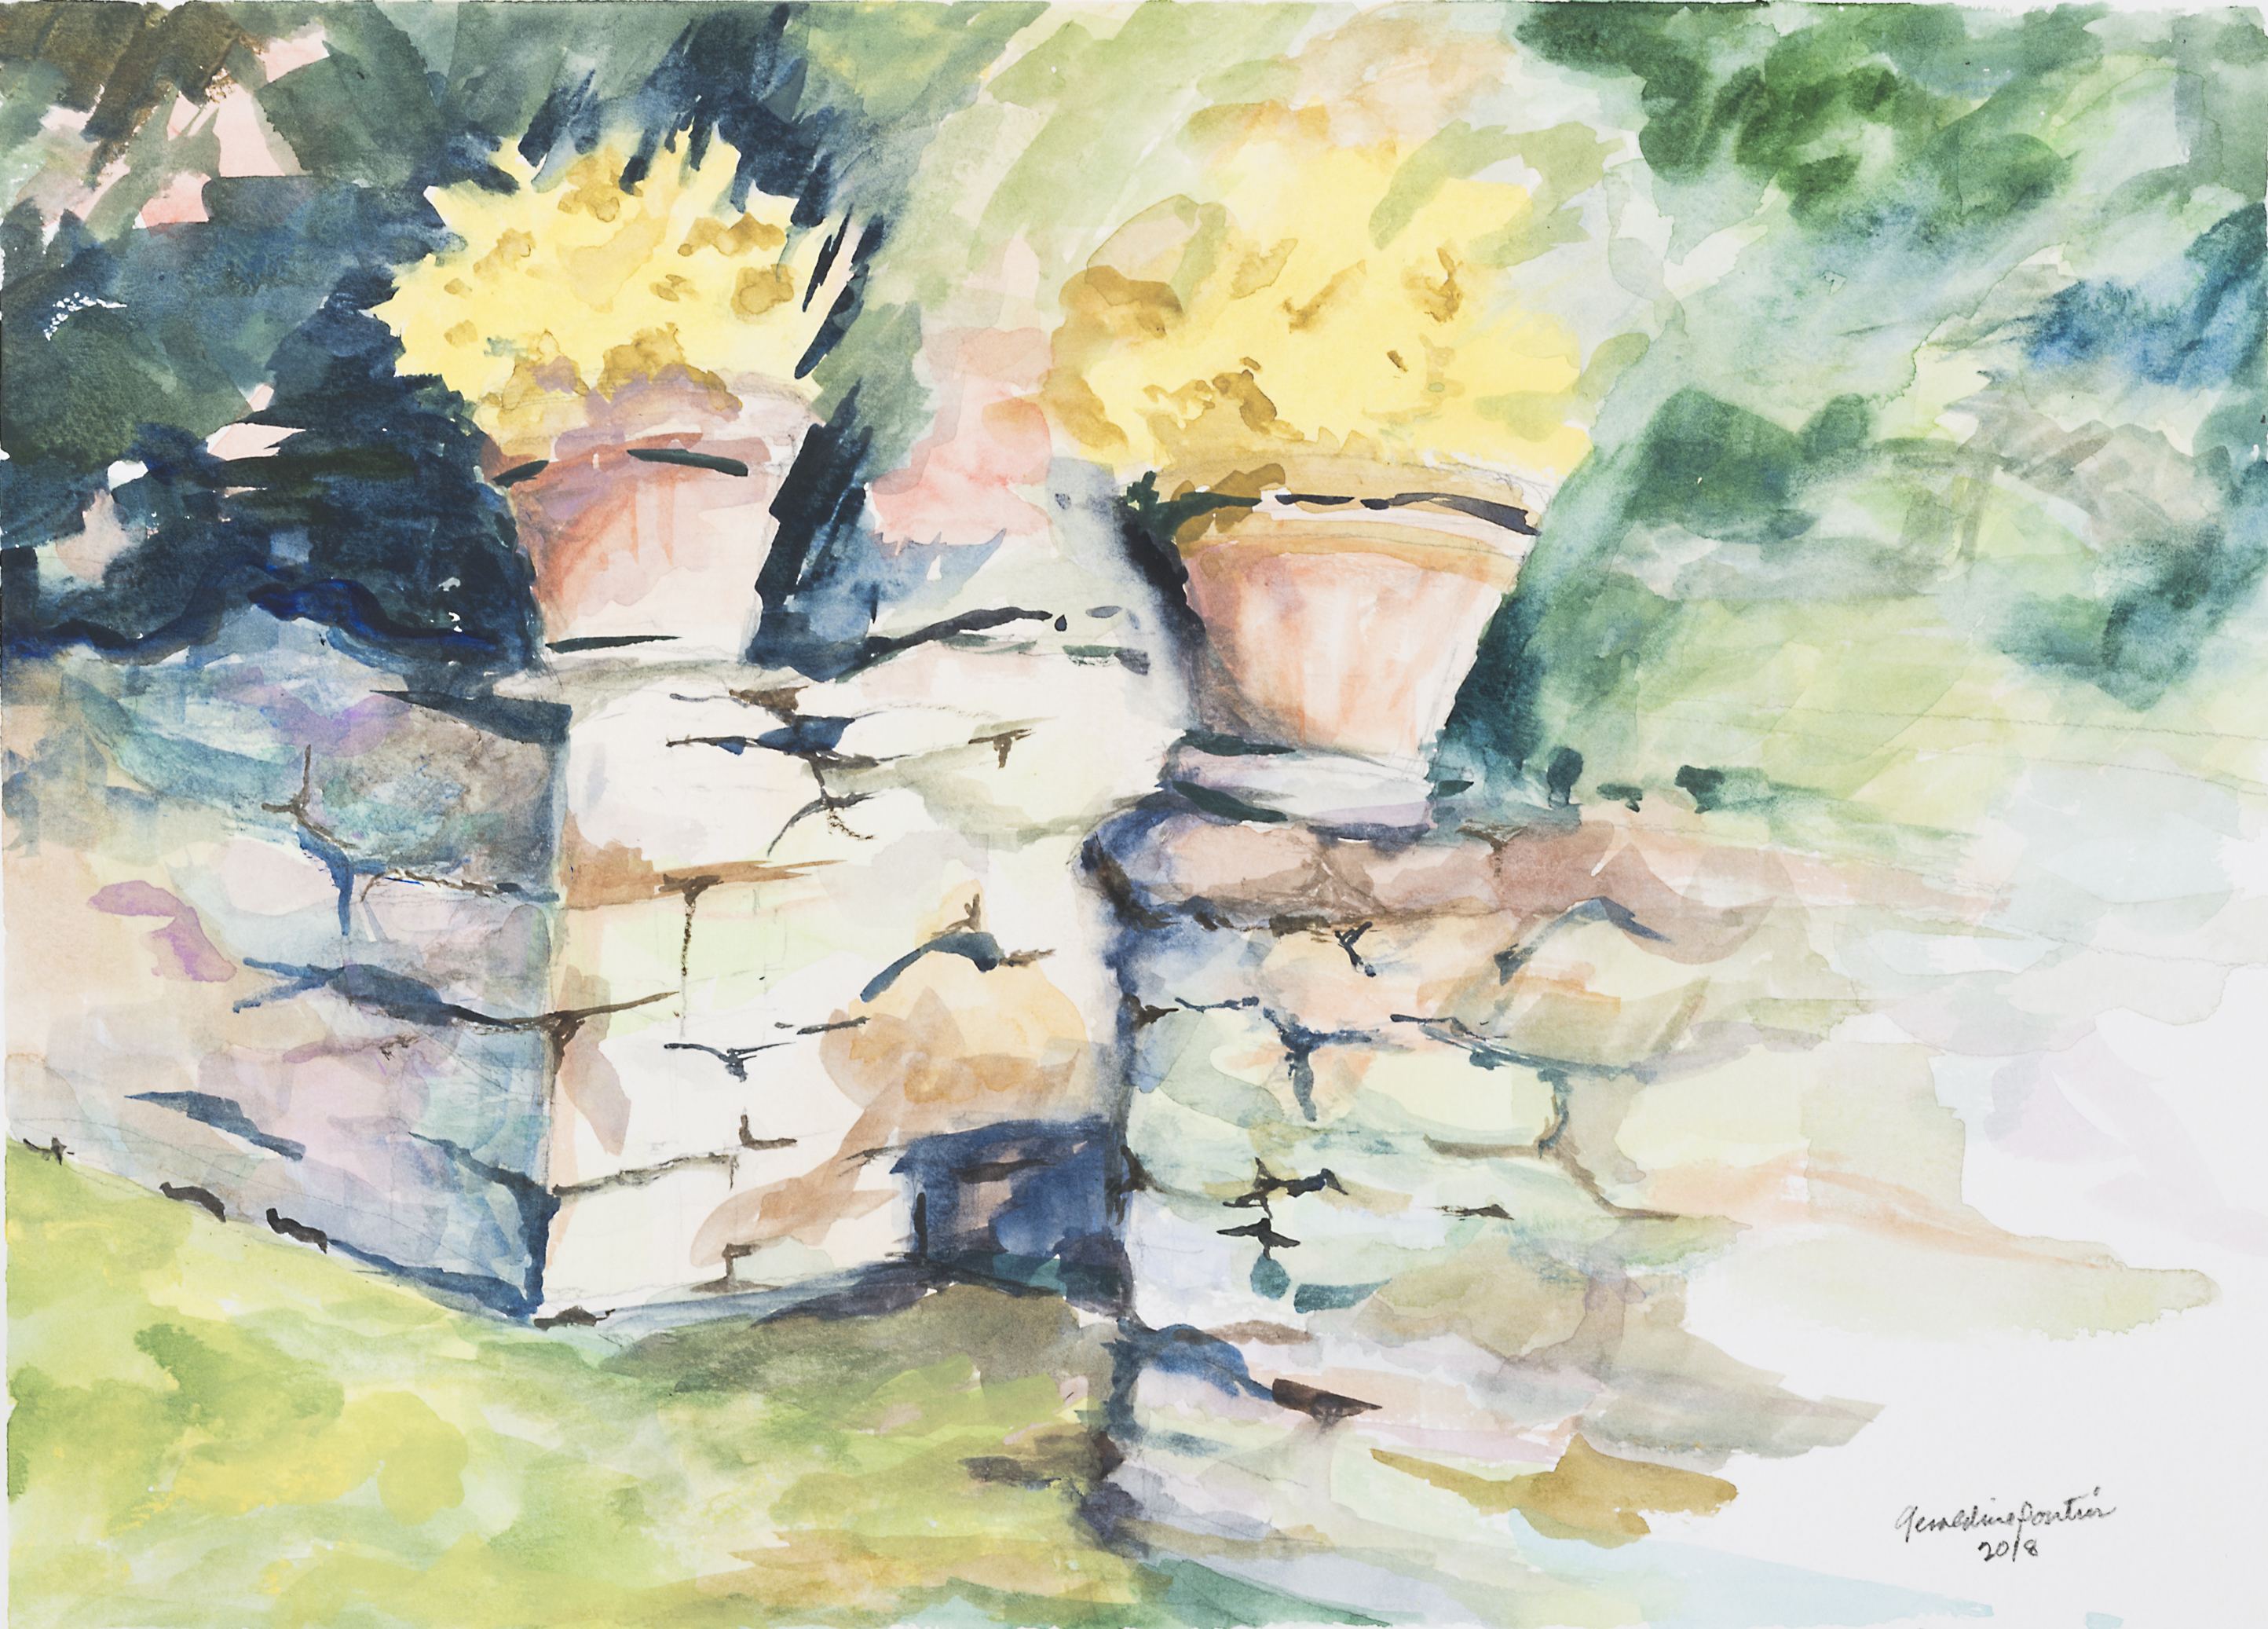 Steps to Halcyon watercolor paining